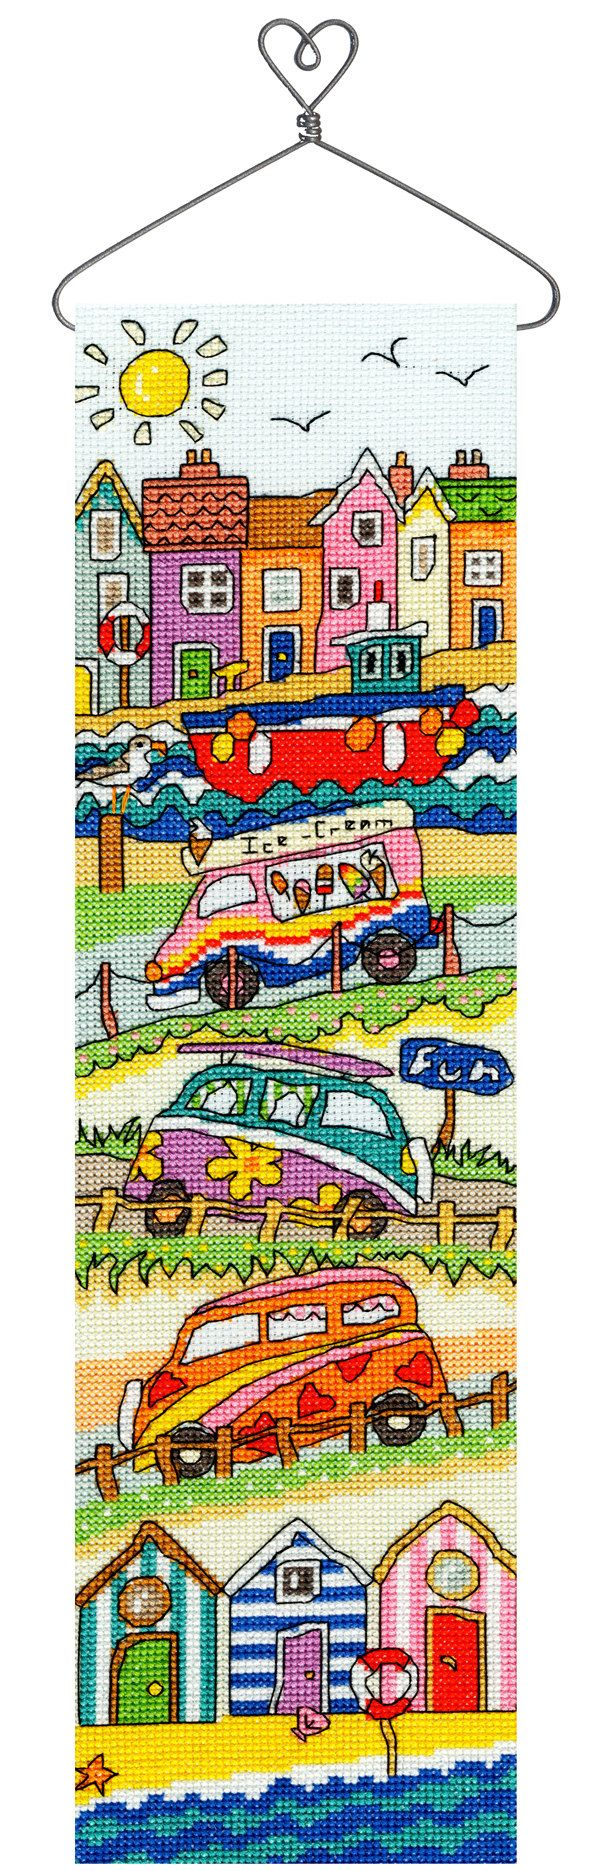 Hang Up Seaside cross stitch kit from Bothy Threads. The kit contains; 14 count Zweigart Aida, pre-sorted stranded cottons, needle, stitch diagrams and instructions. Finished size 11 x 41cm. This kit uses full cross stitches, back stitch and one French knot A brand new kit will be sent directly to you by Bothy Threads - usually despatched same or next working day